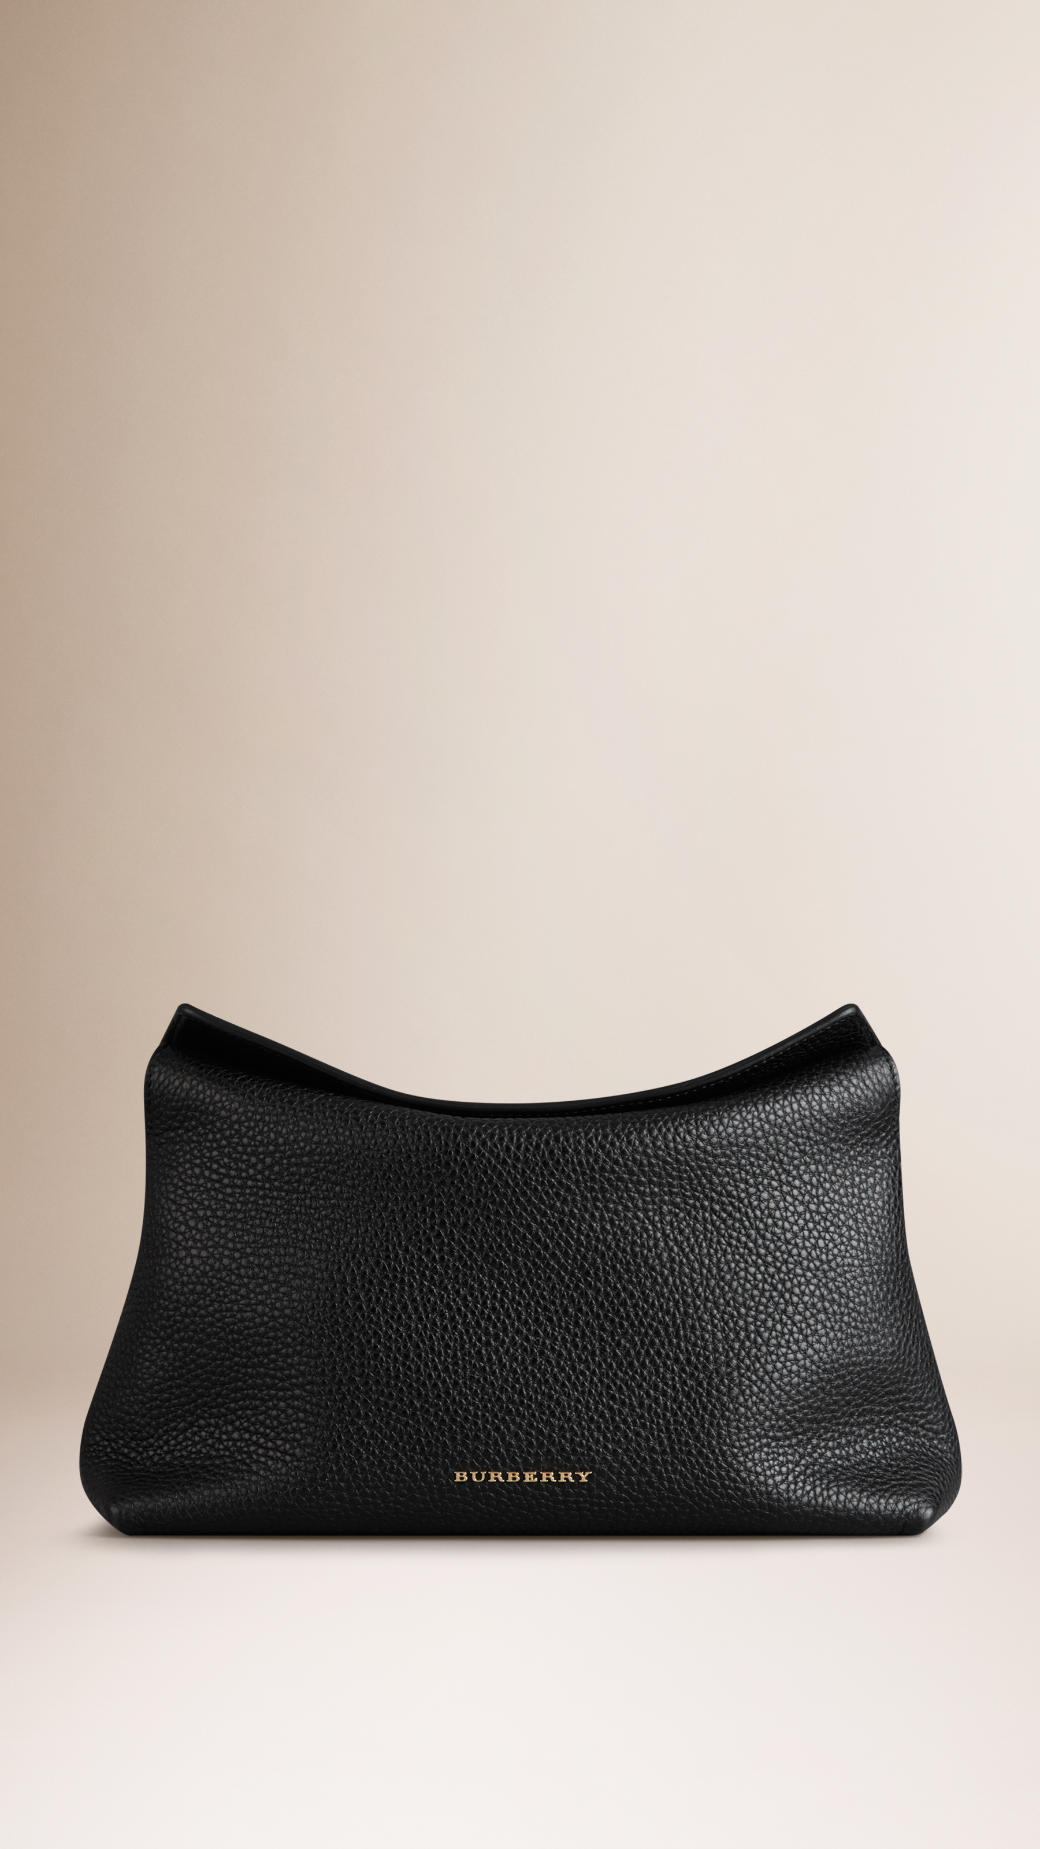 Burberry Small Grainy Leather Clutch Bag in Black | Lyst